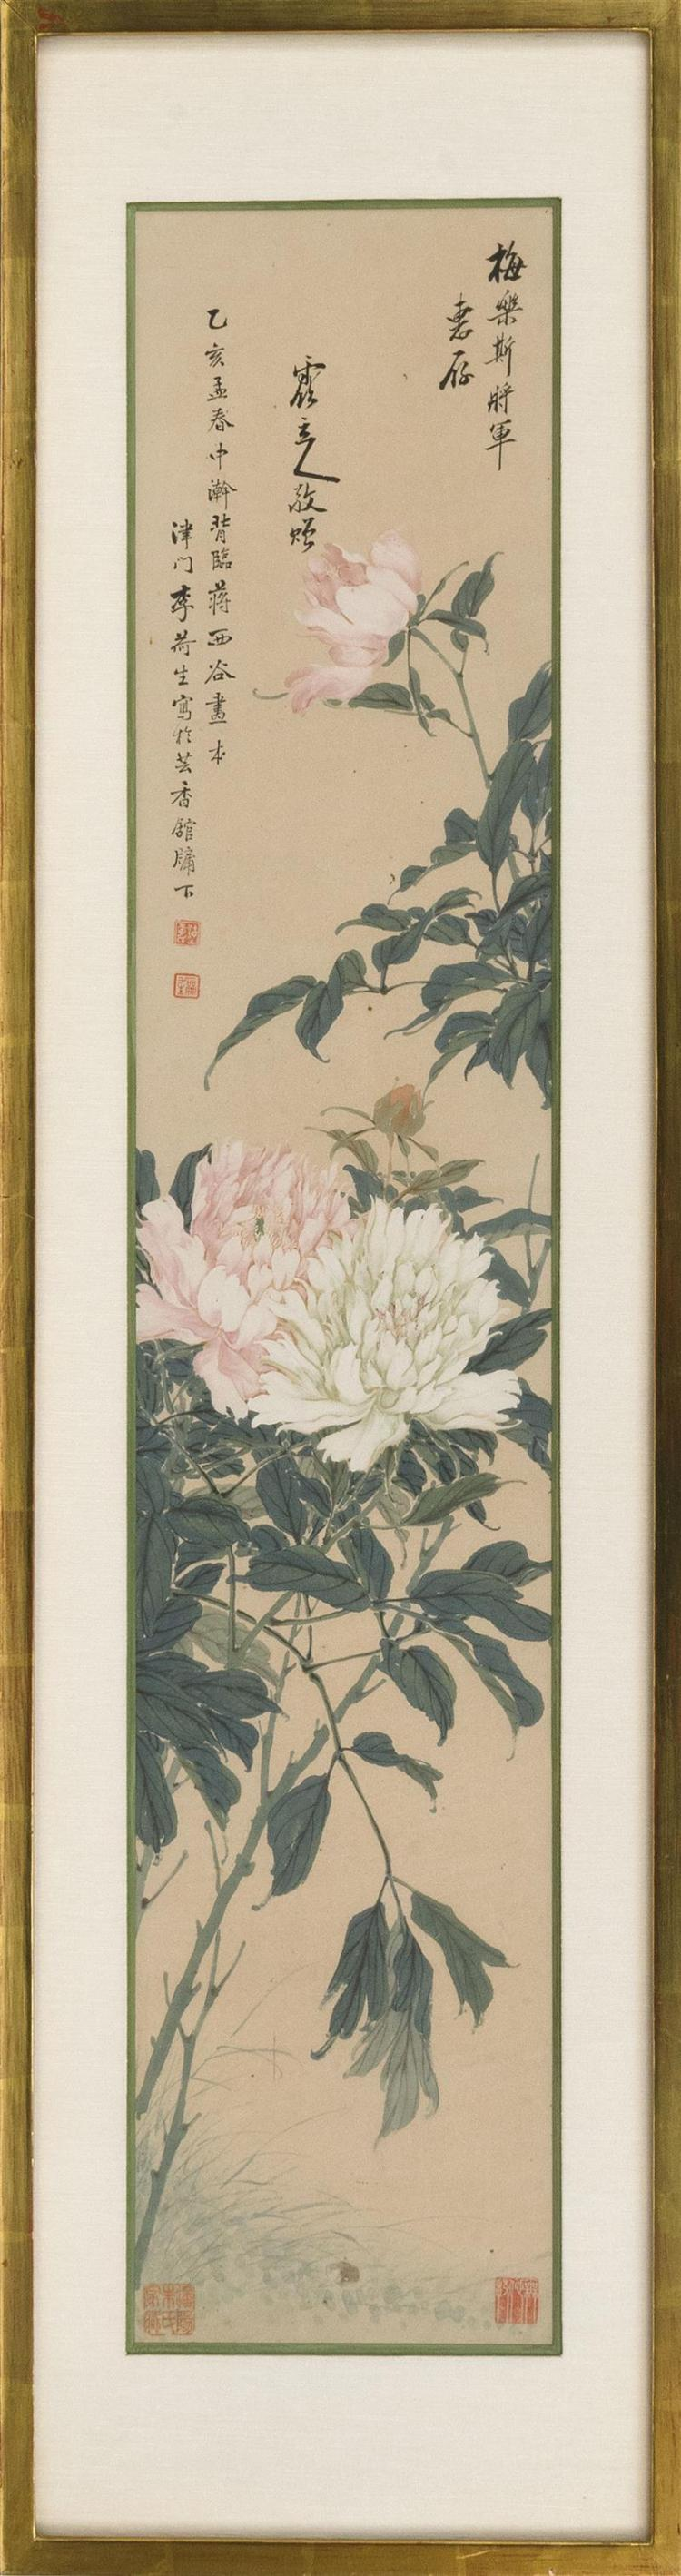 SCROLL PAINTING ON PAPER Depicting pink and white peonies. With calligraphy and four seal marks. 43